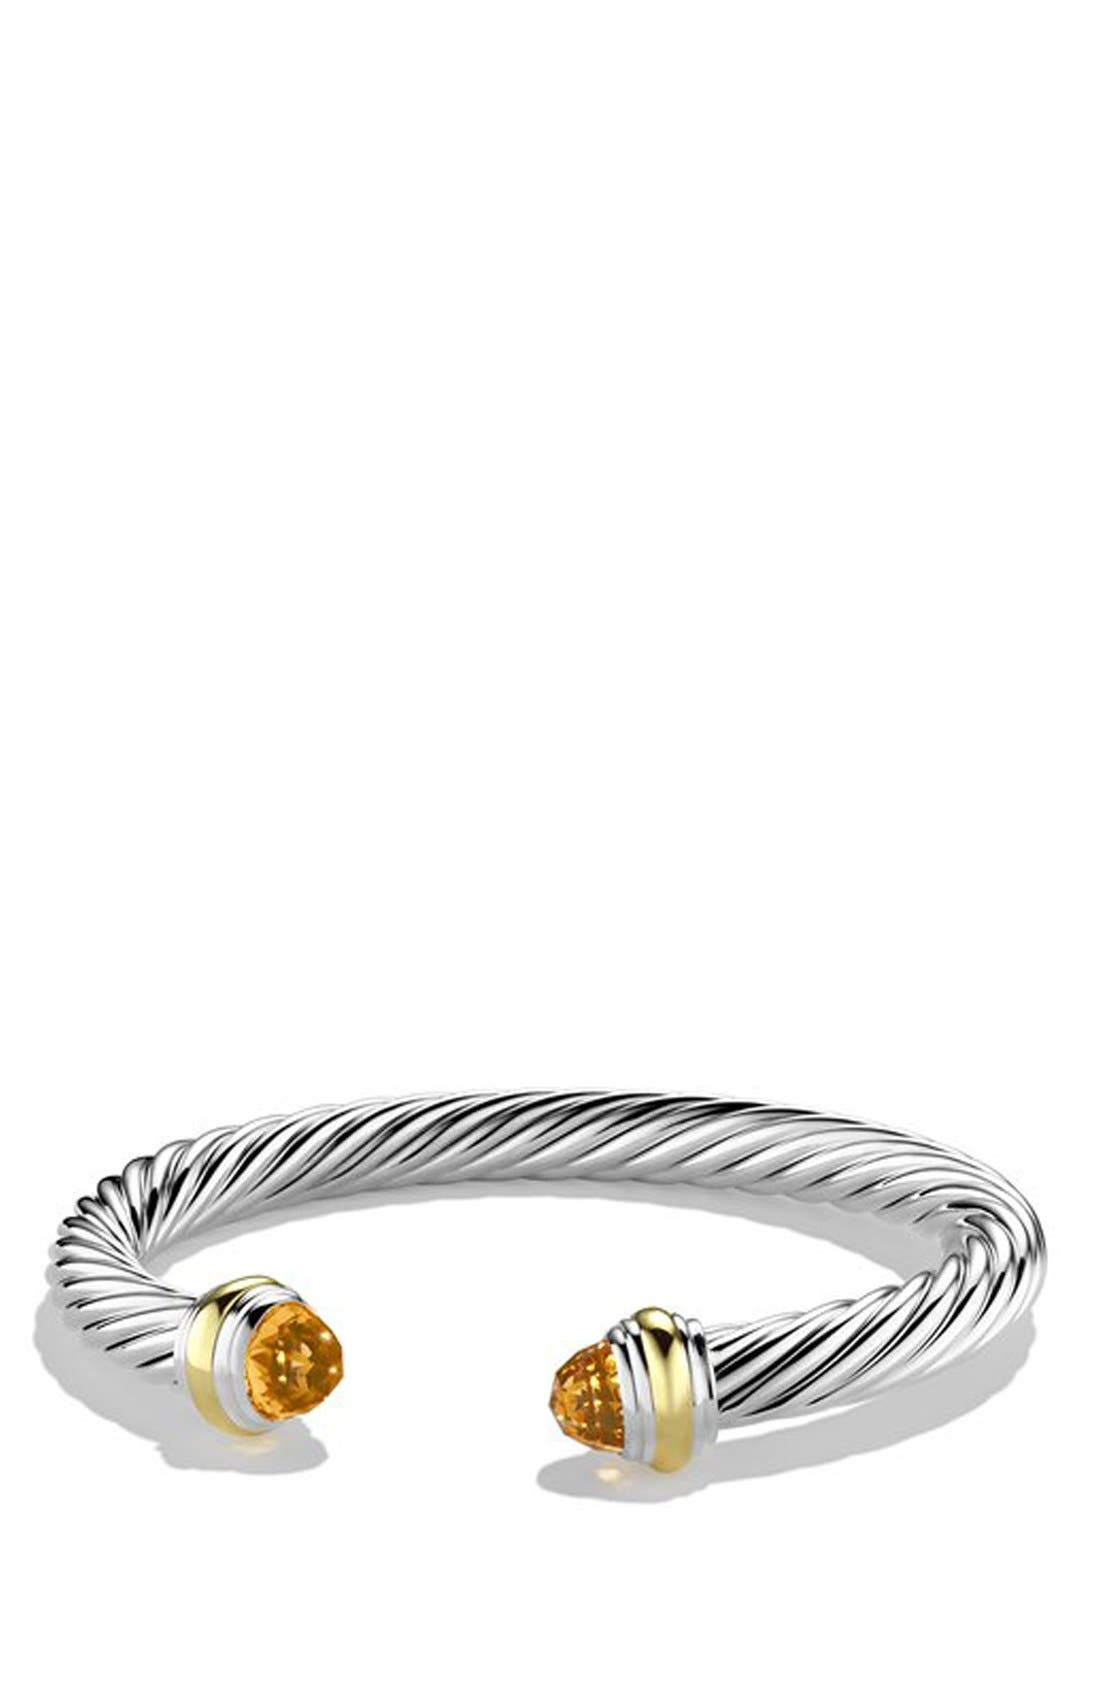 David Yurman Cable Classics 7mm Bracelet with 14K Gold